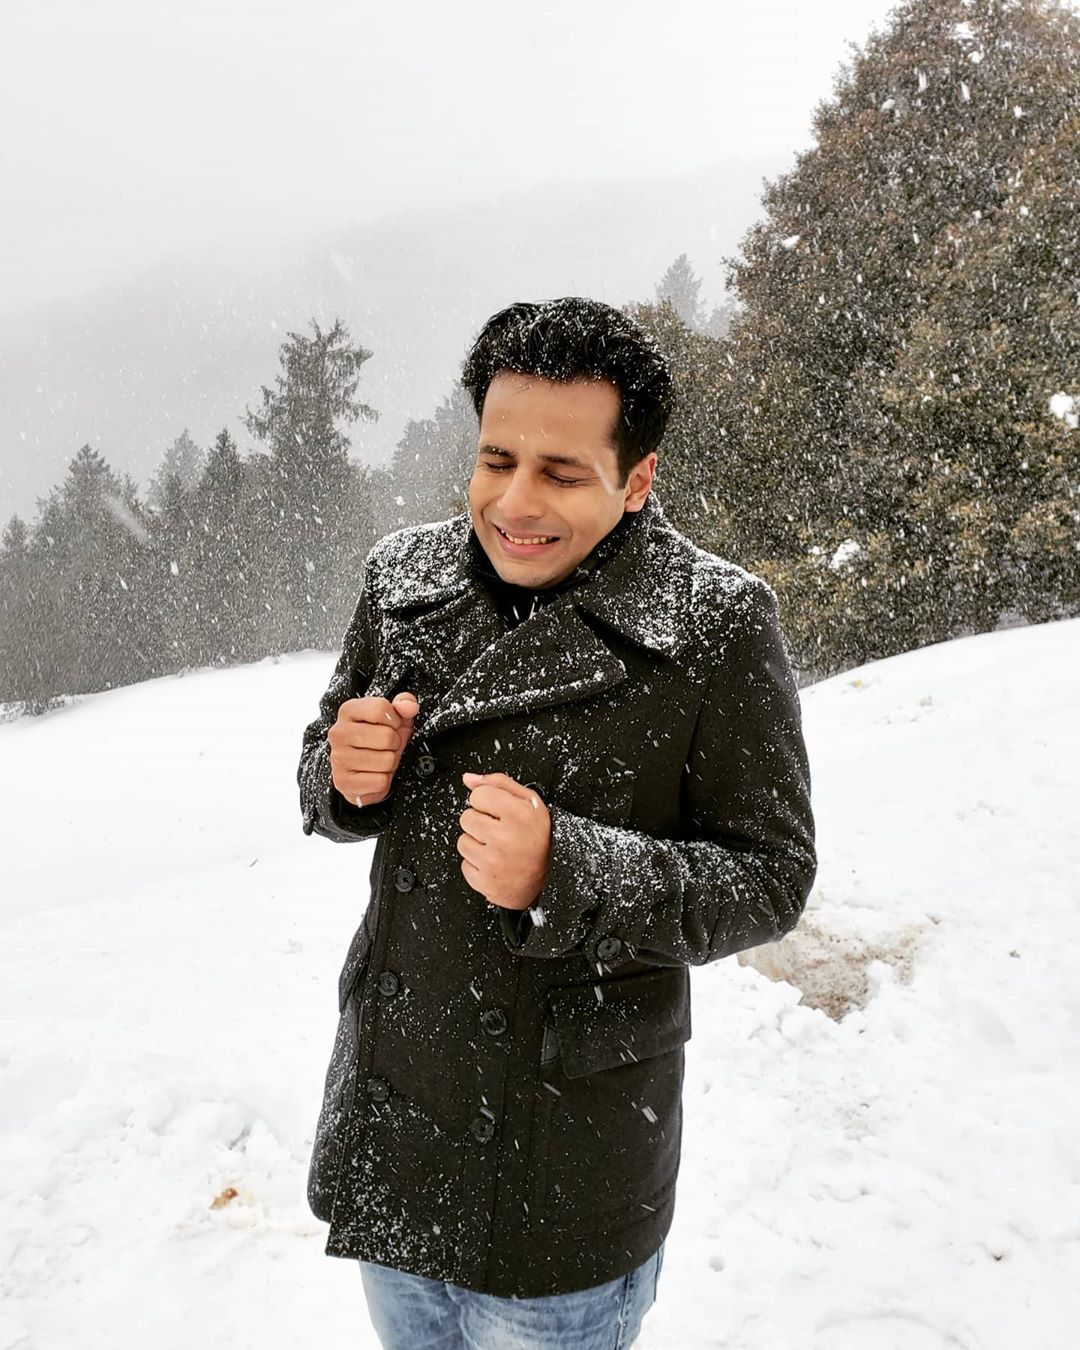 Ojas Rawal,  memories, throwback, snow, filmshoot, MissMasalaDosa, OjasRawal, actor, winter, nature, mountains, ski, auli, uttarakhand, india, beautiful, beautifuldestinations, skiing, mountain, landscape, ojas, bollywood, filmactor, freezing, cold, snowday, ilovesnow, naturelovers, outdoors, trees, view